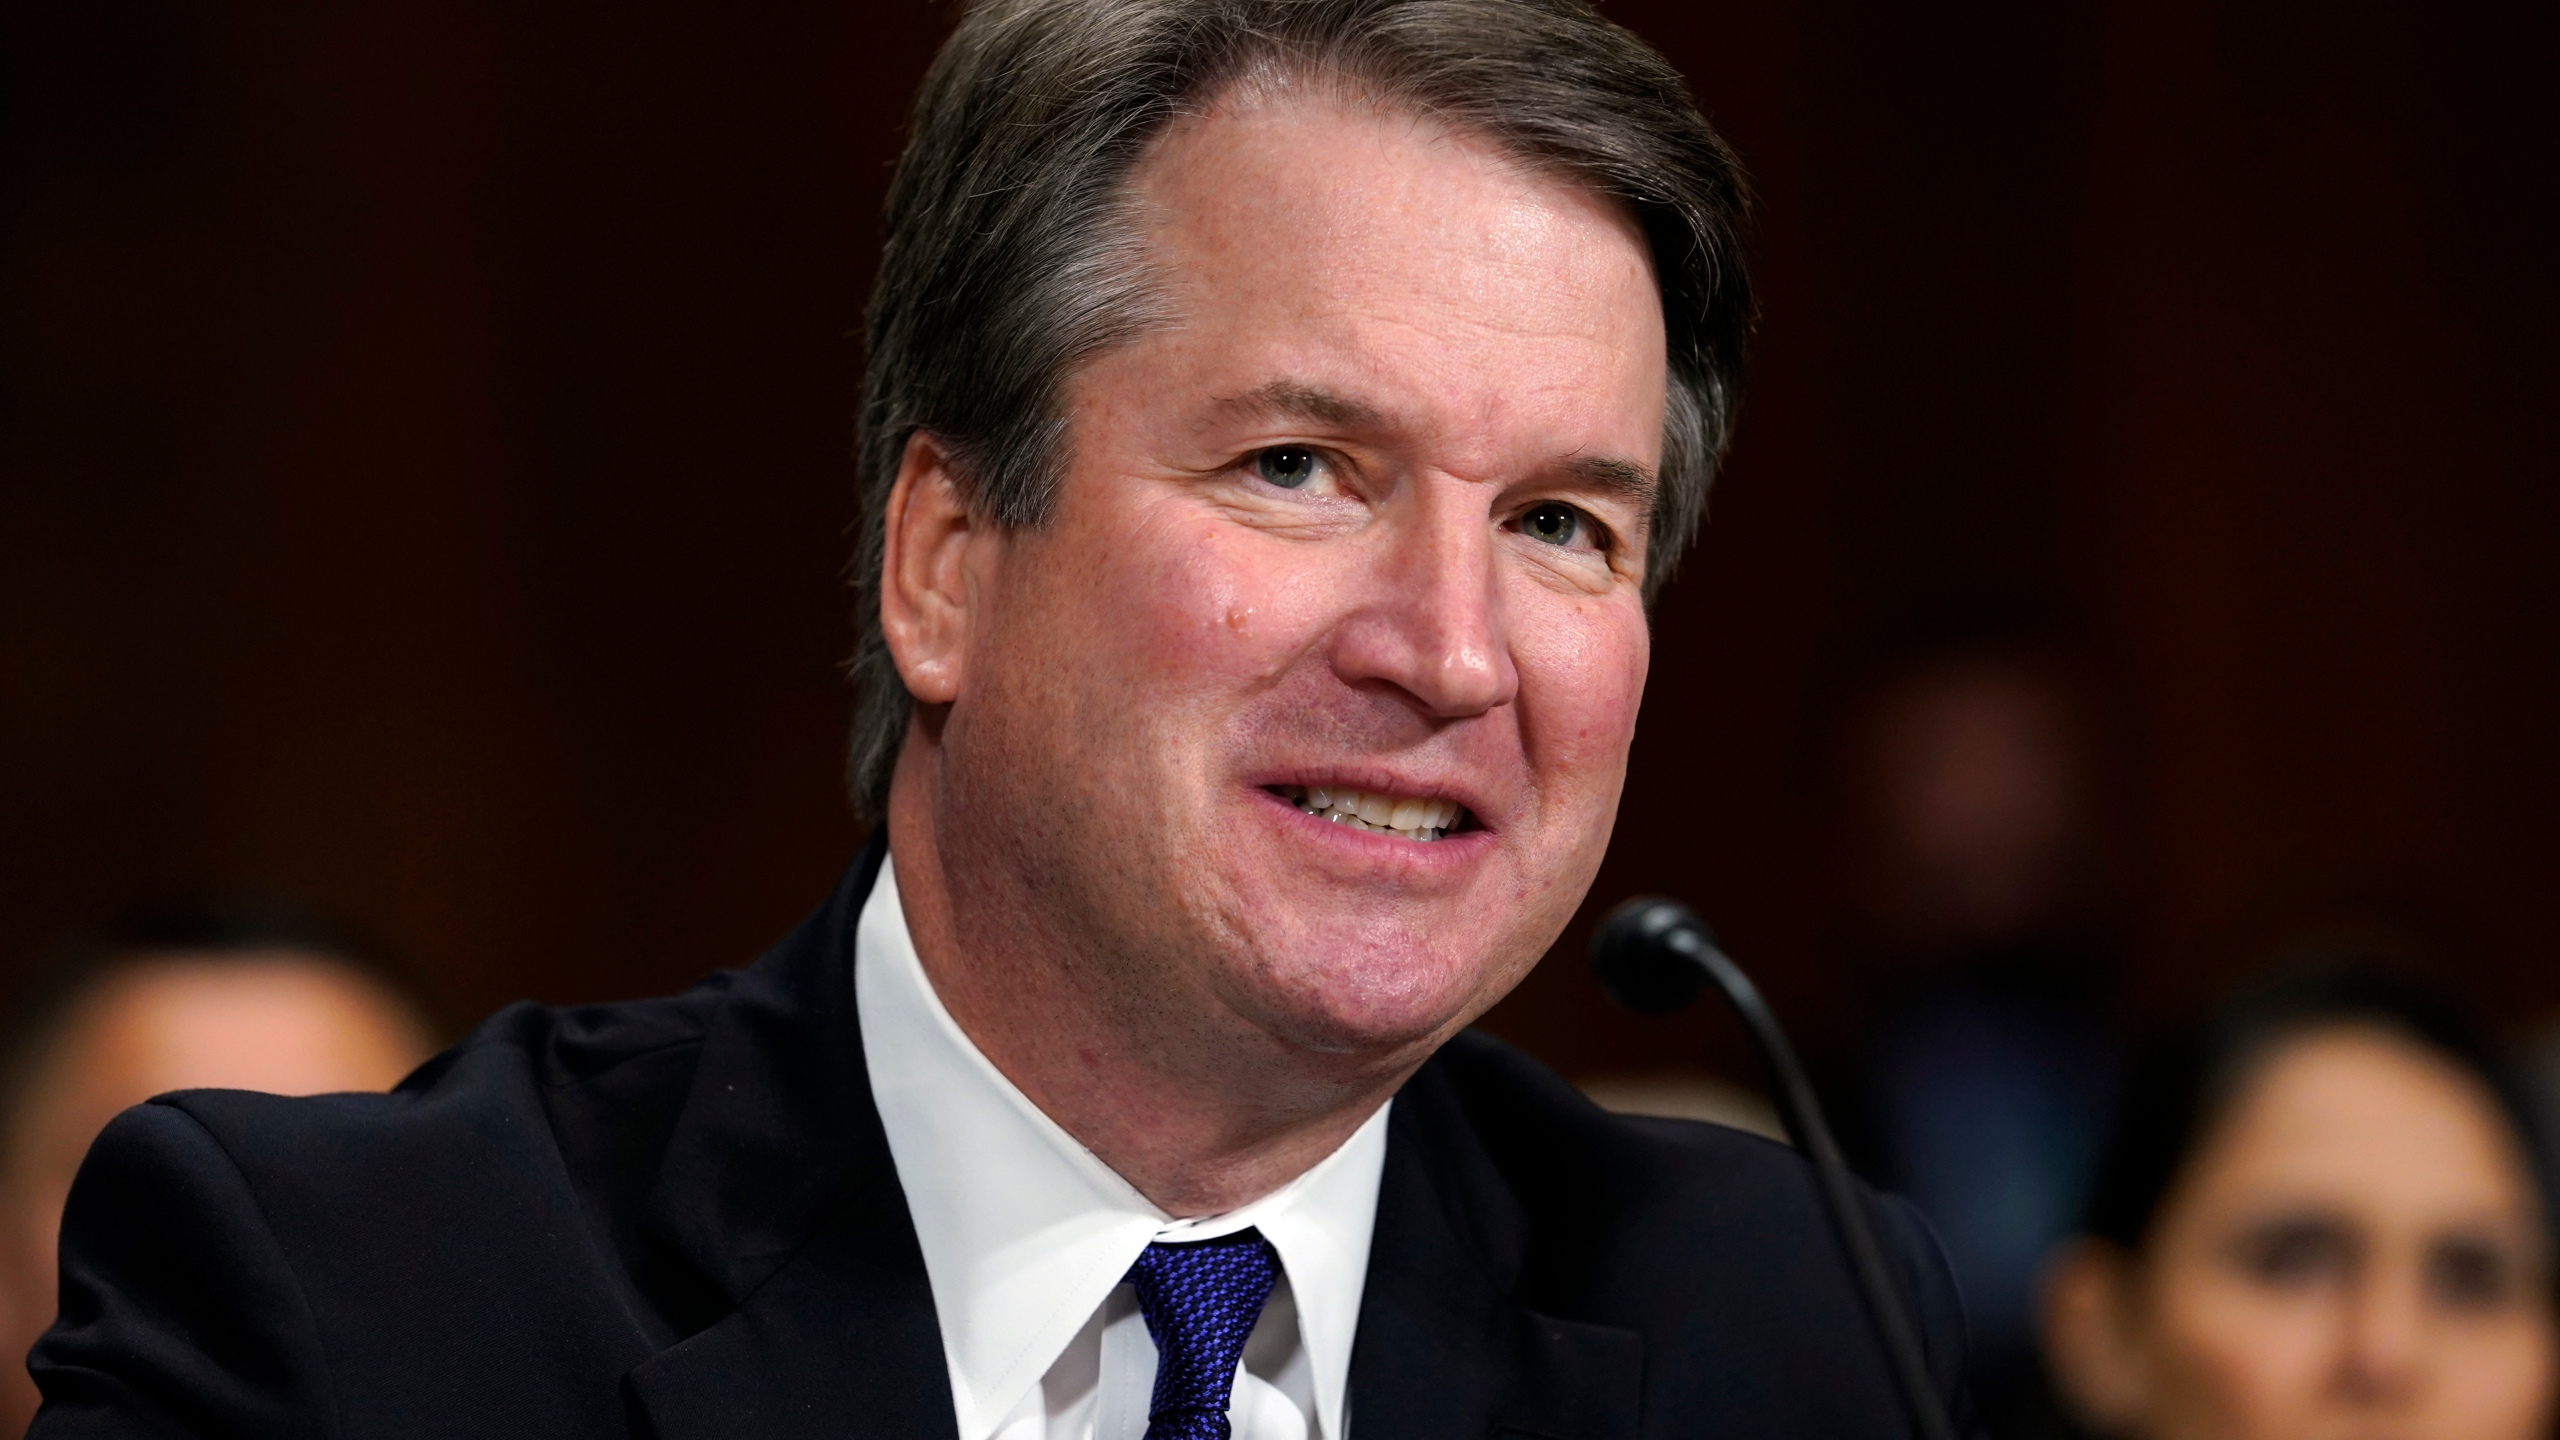 Supreme_Court_Kavanaugh_88939-159532.jpg98200168